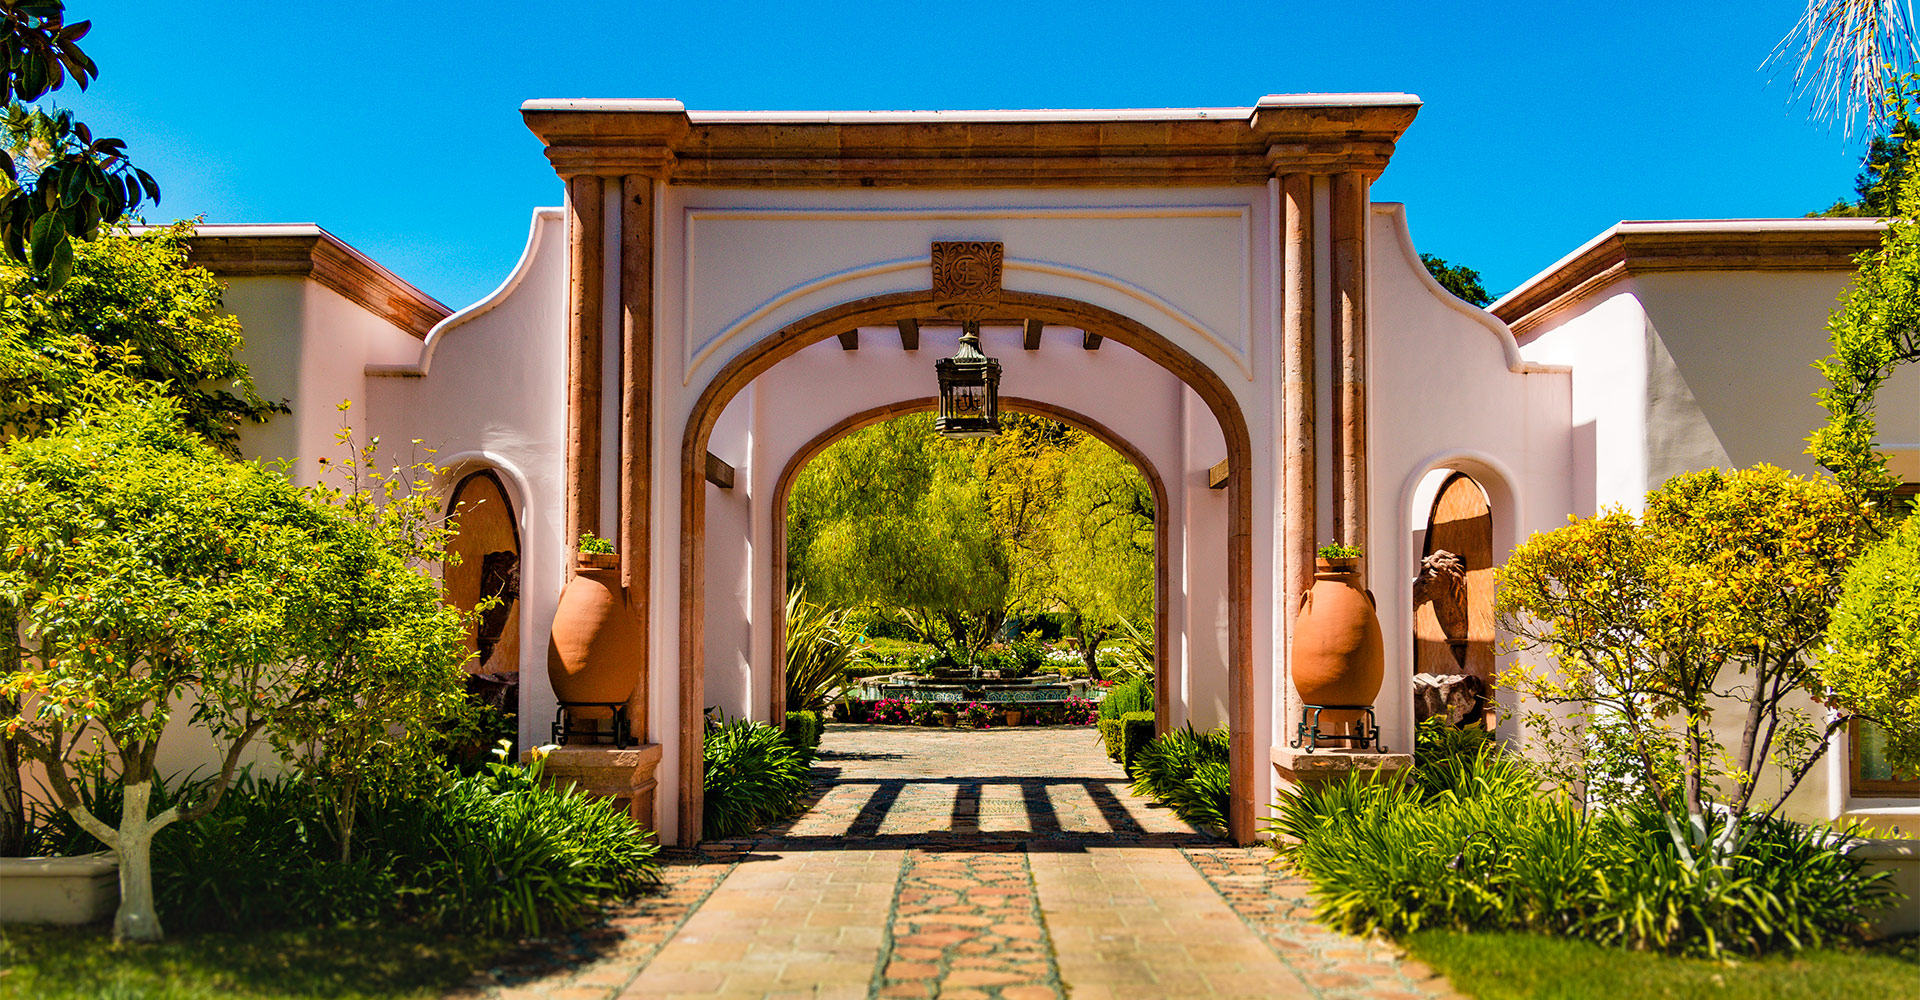 The gates that welcome you to the ranch